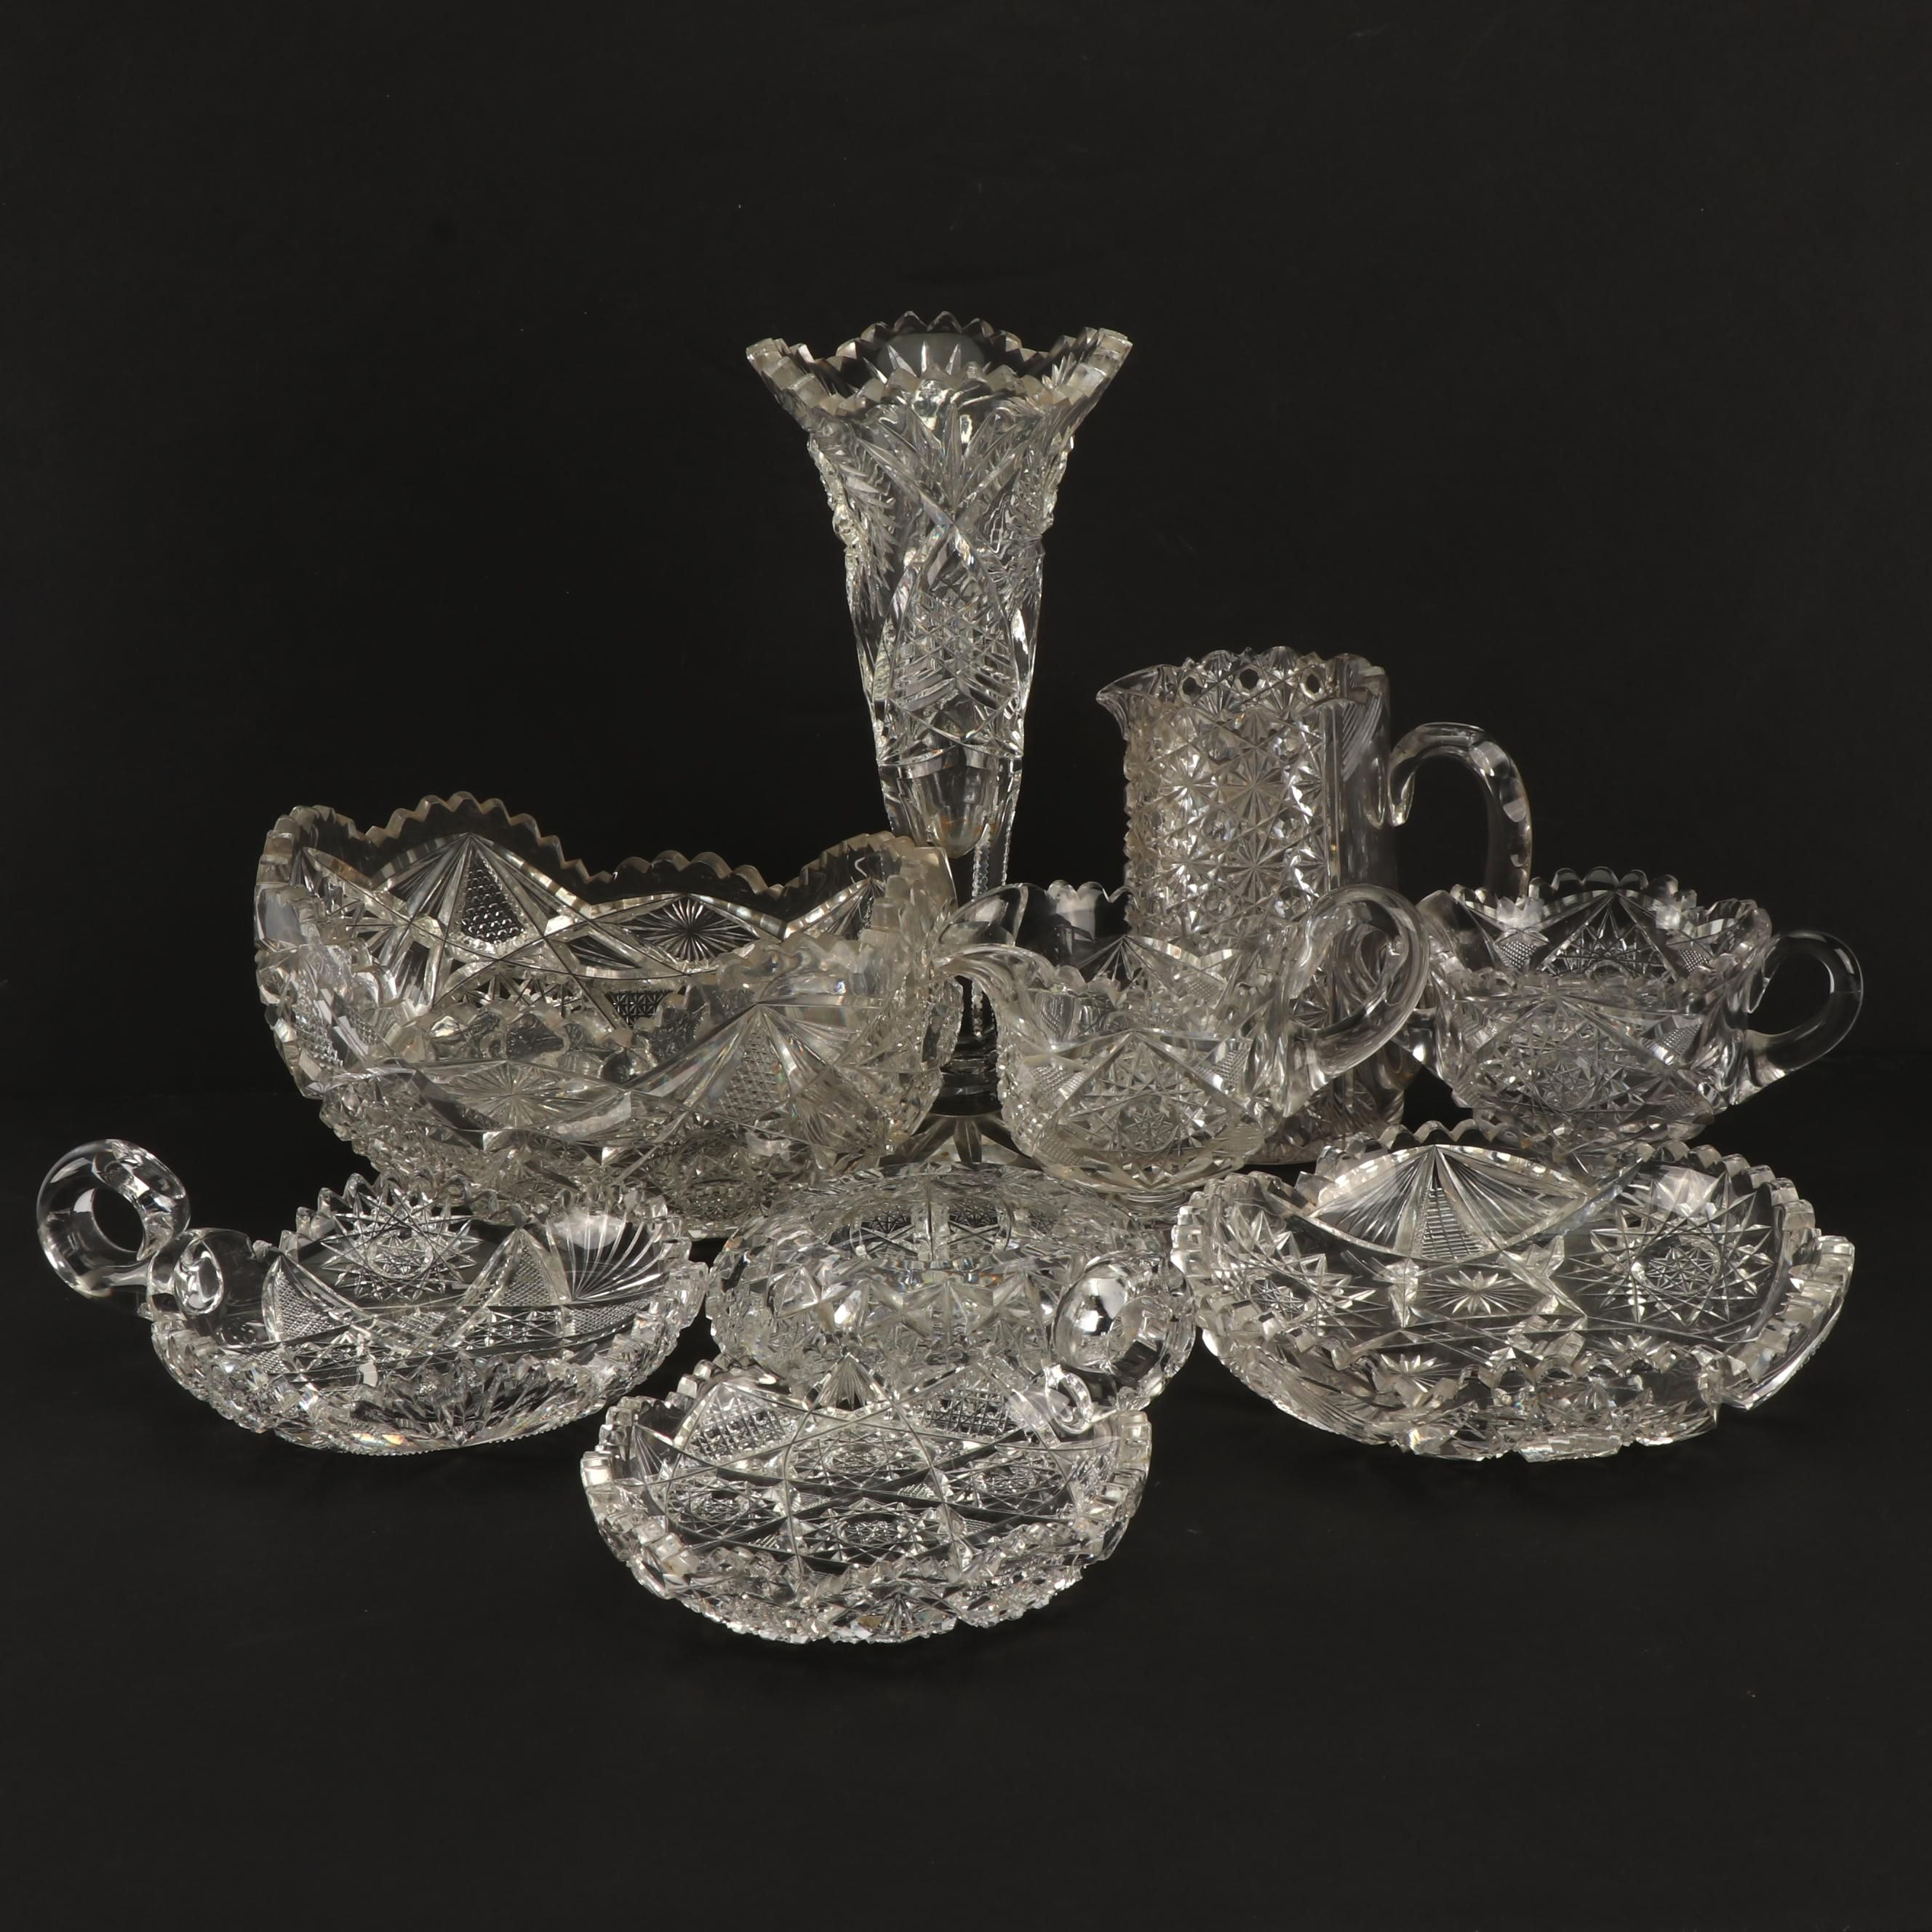 Late 19th Century/Early 20th Century Lead Glass Tableware